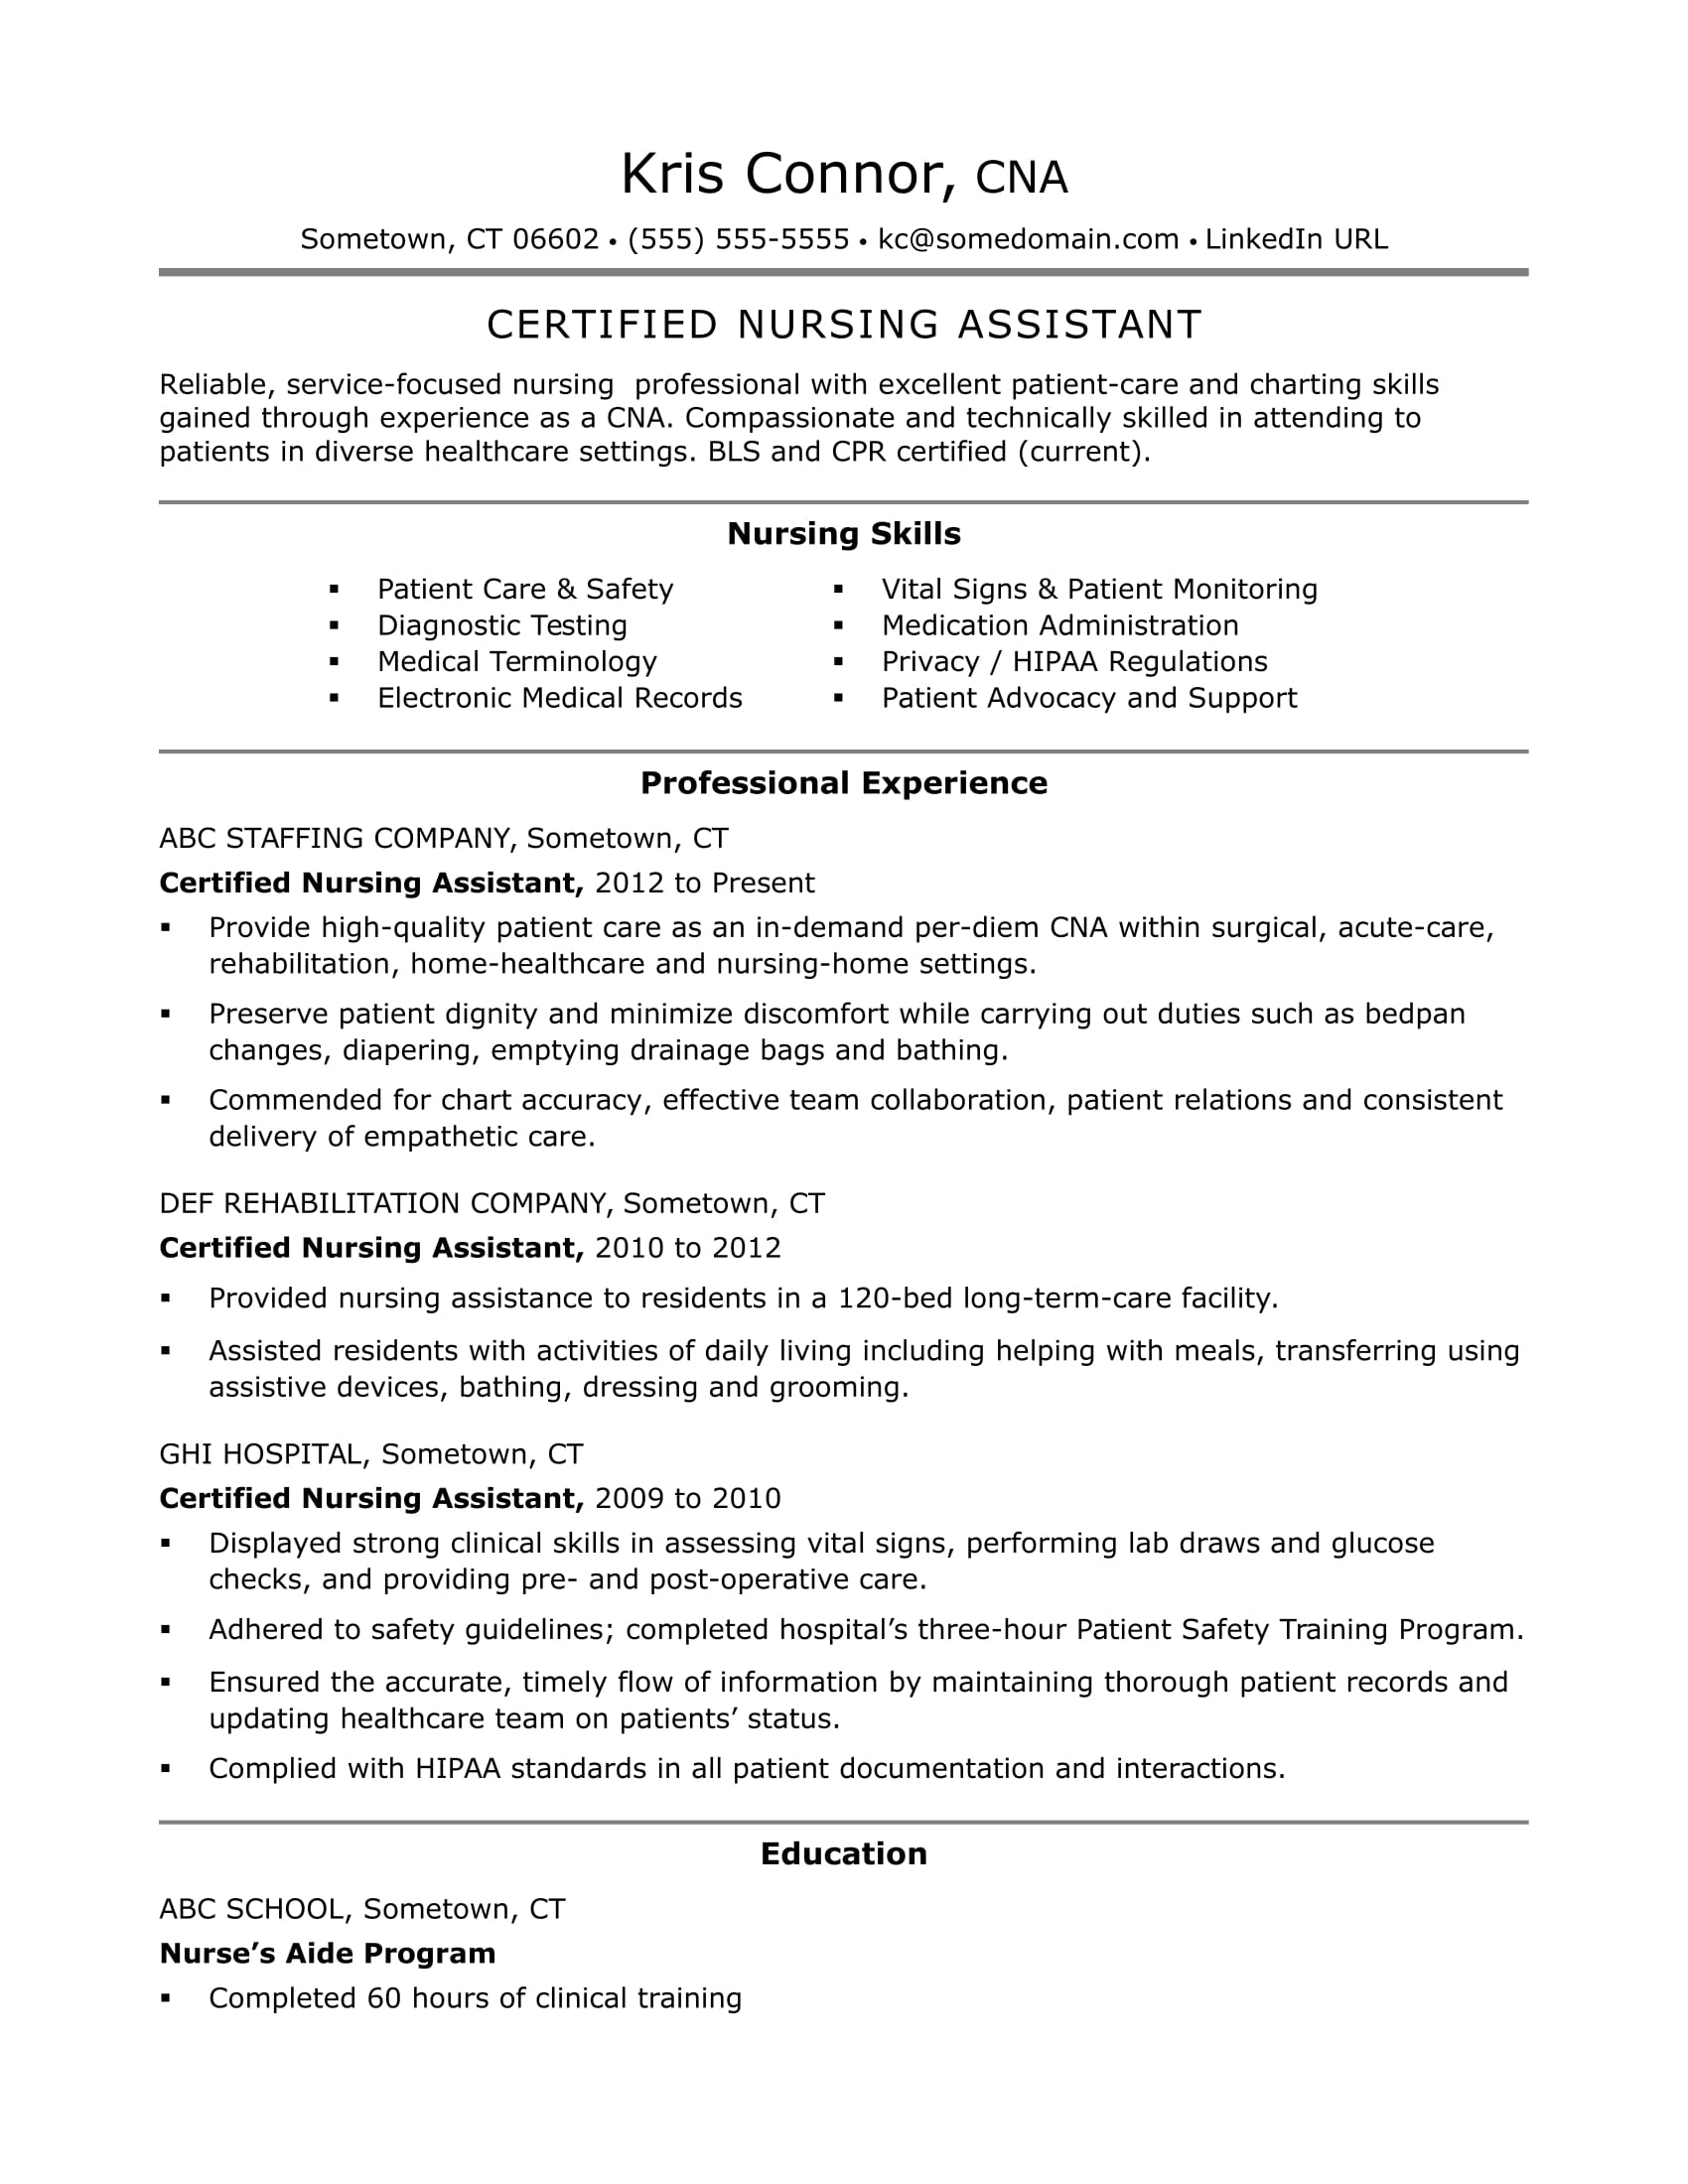 Day Care Responsibilities Resume Cna Resume Examples Skills For Cnas Monster